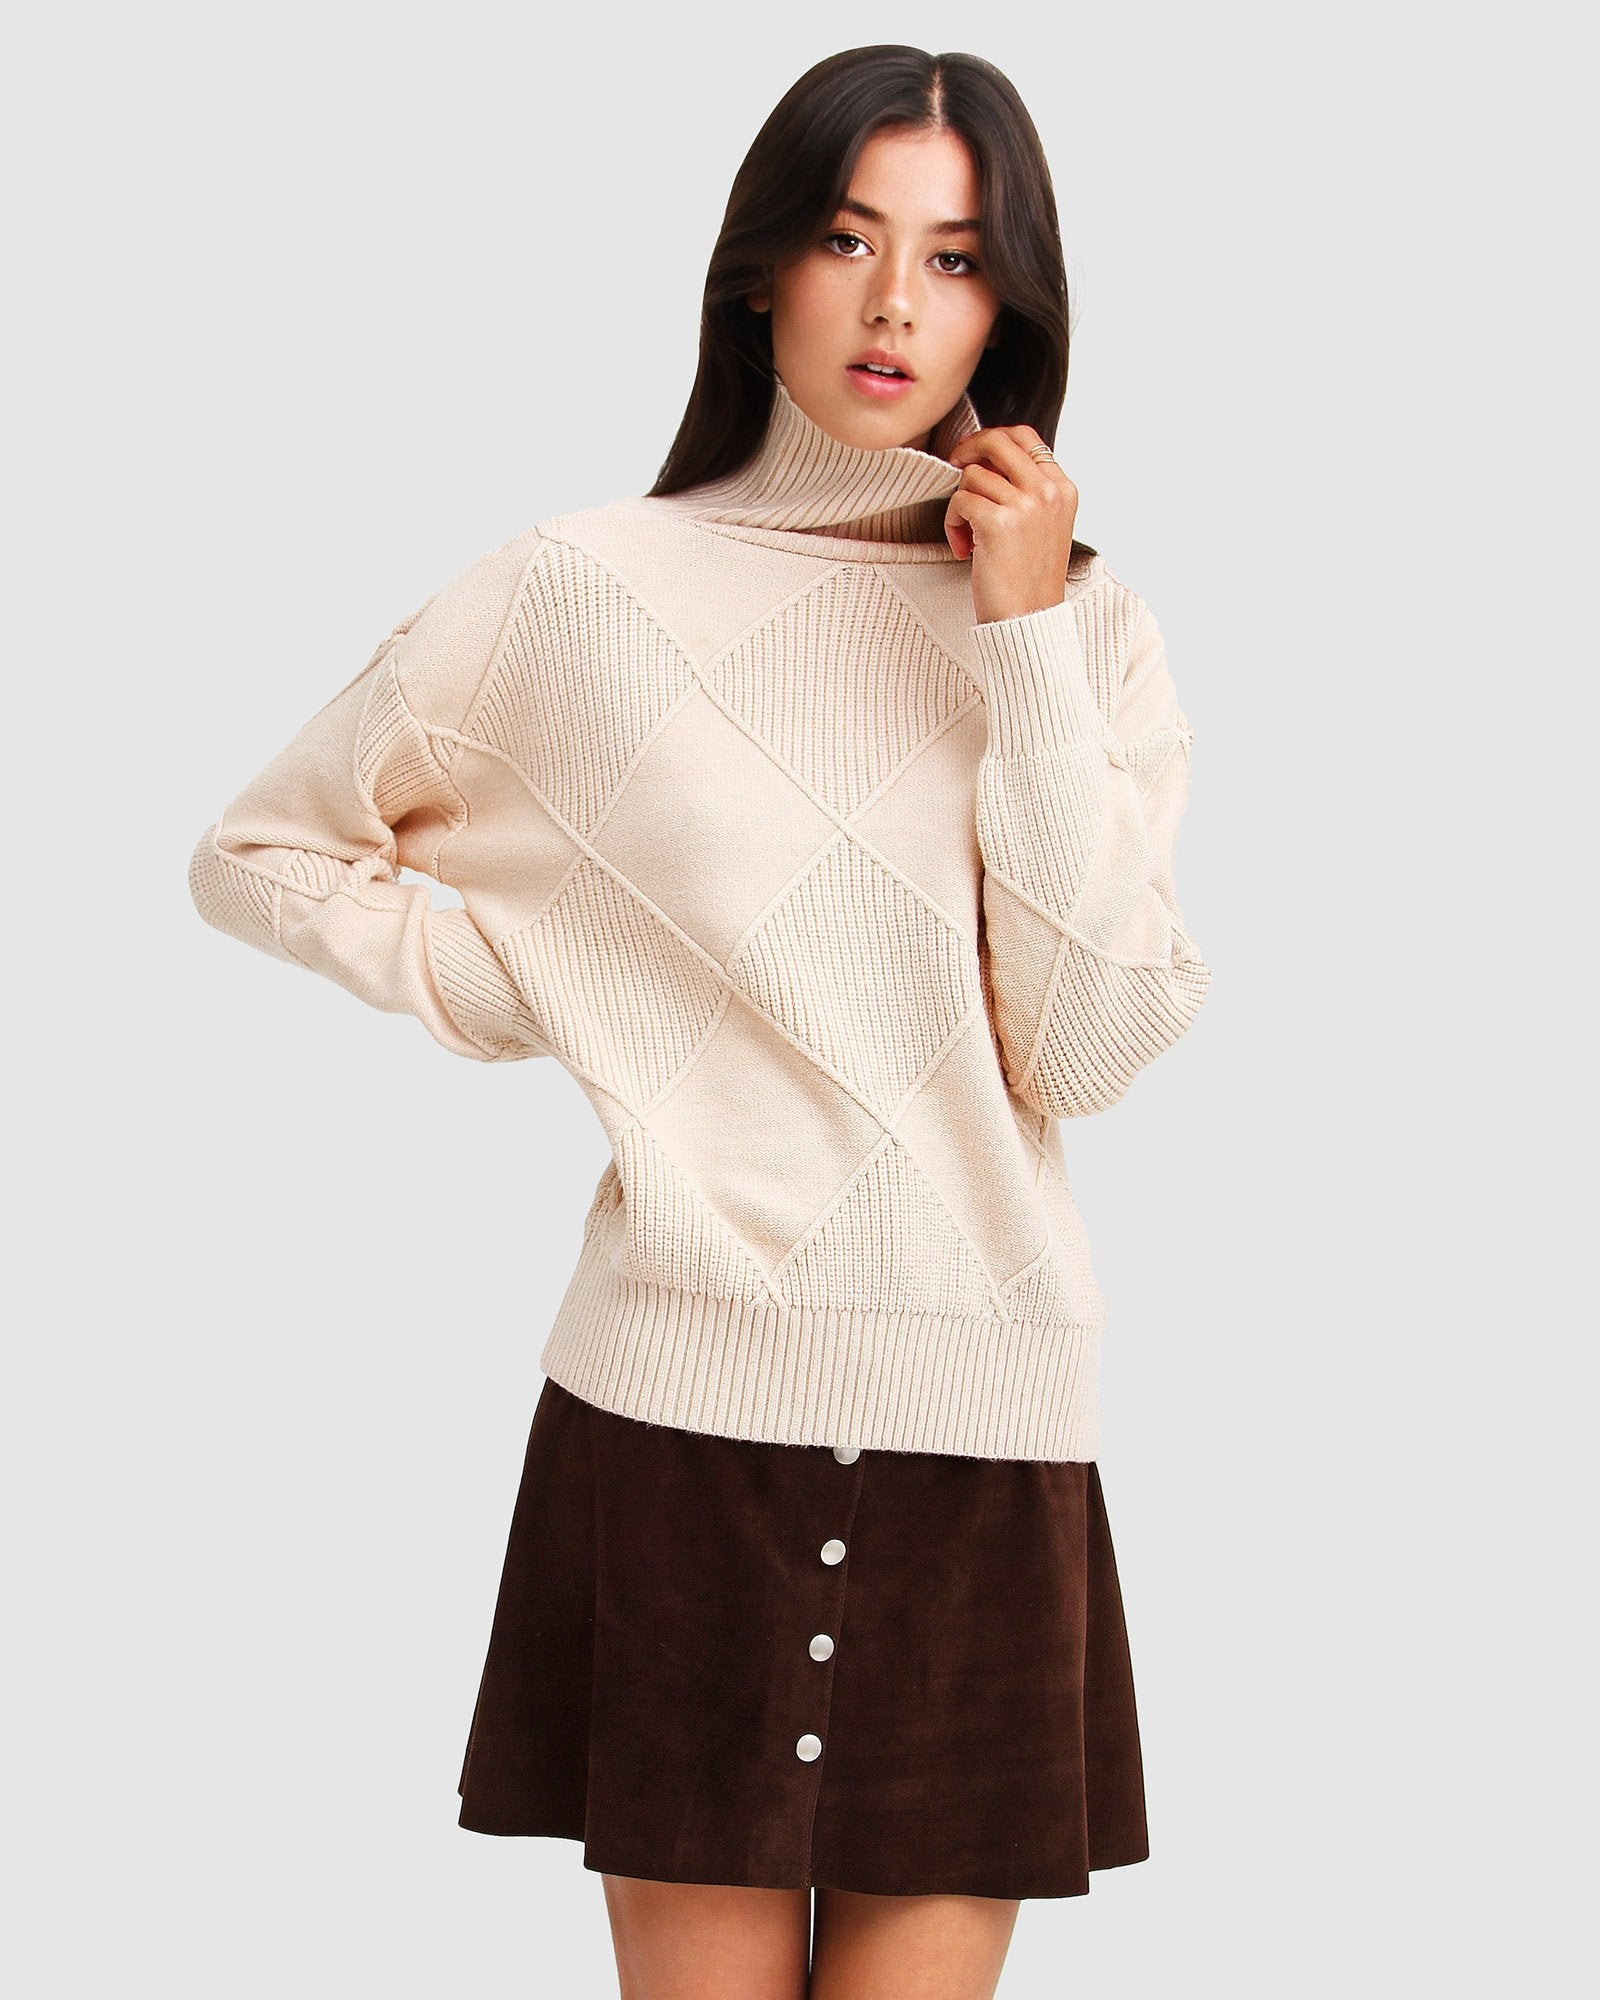 The Academy Turtleneck Jumper - Ivory